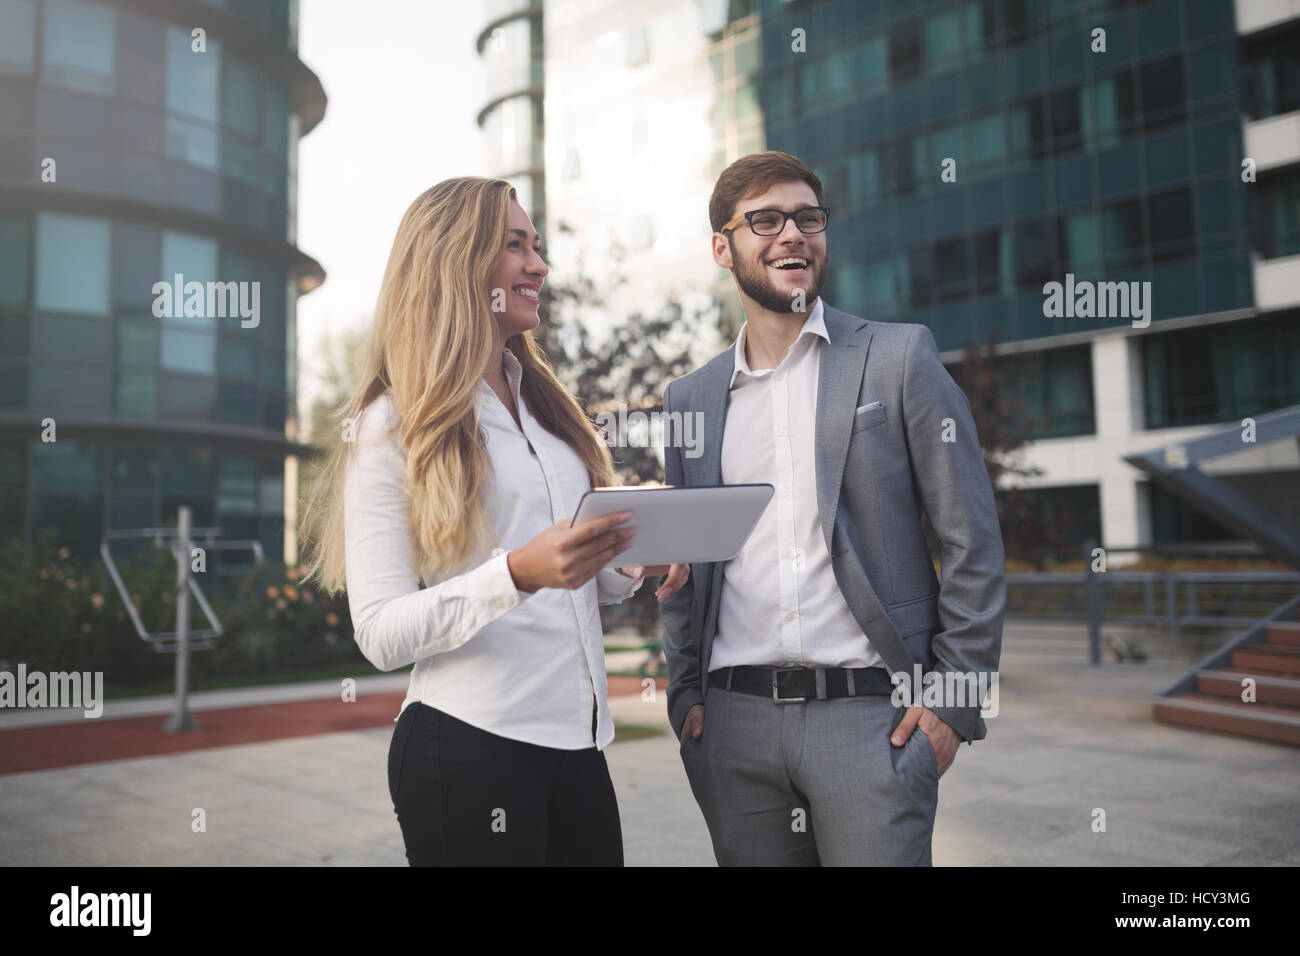 Business colleagues talking outdoors and using tablet - Stock Image